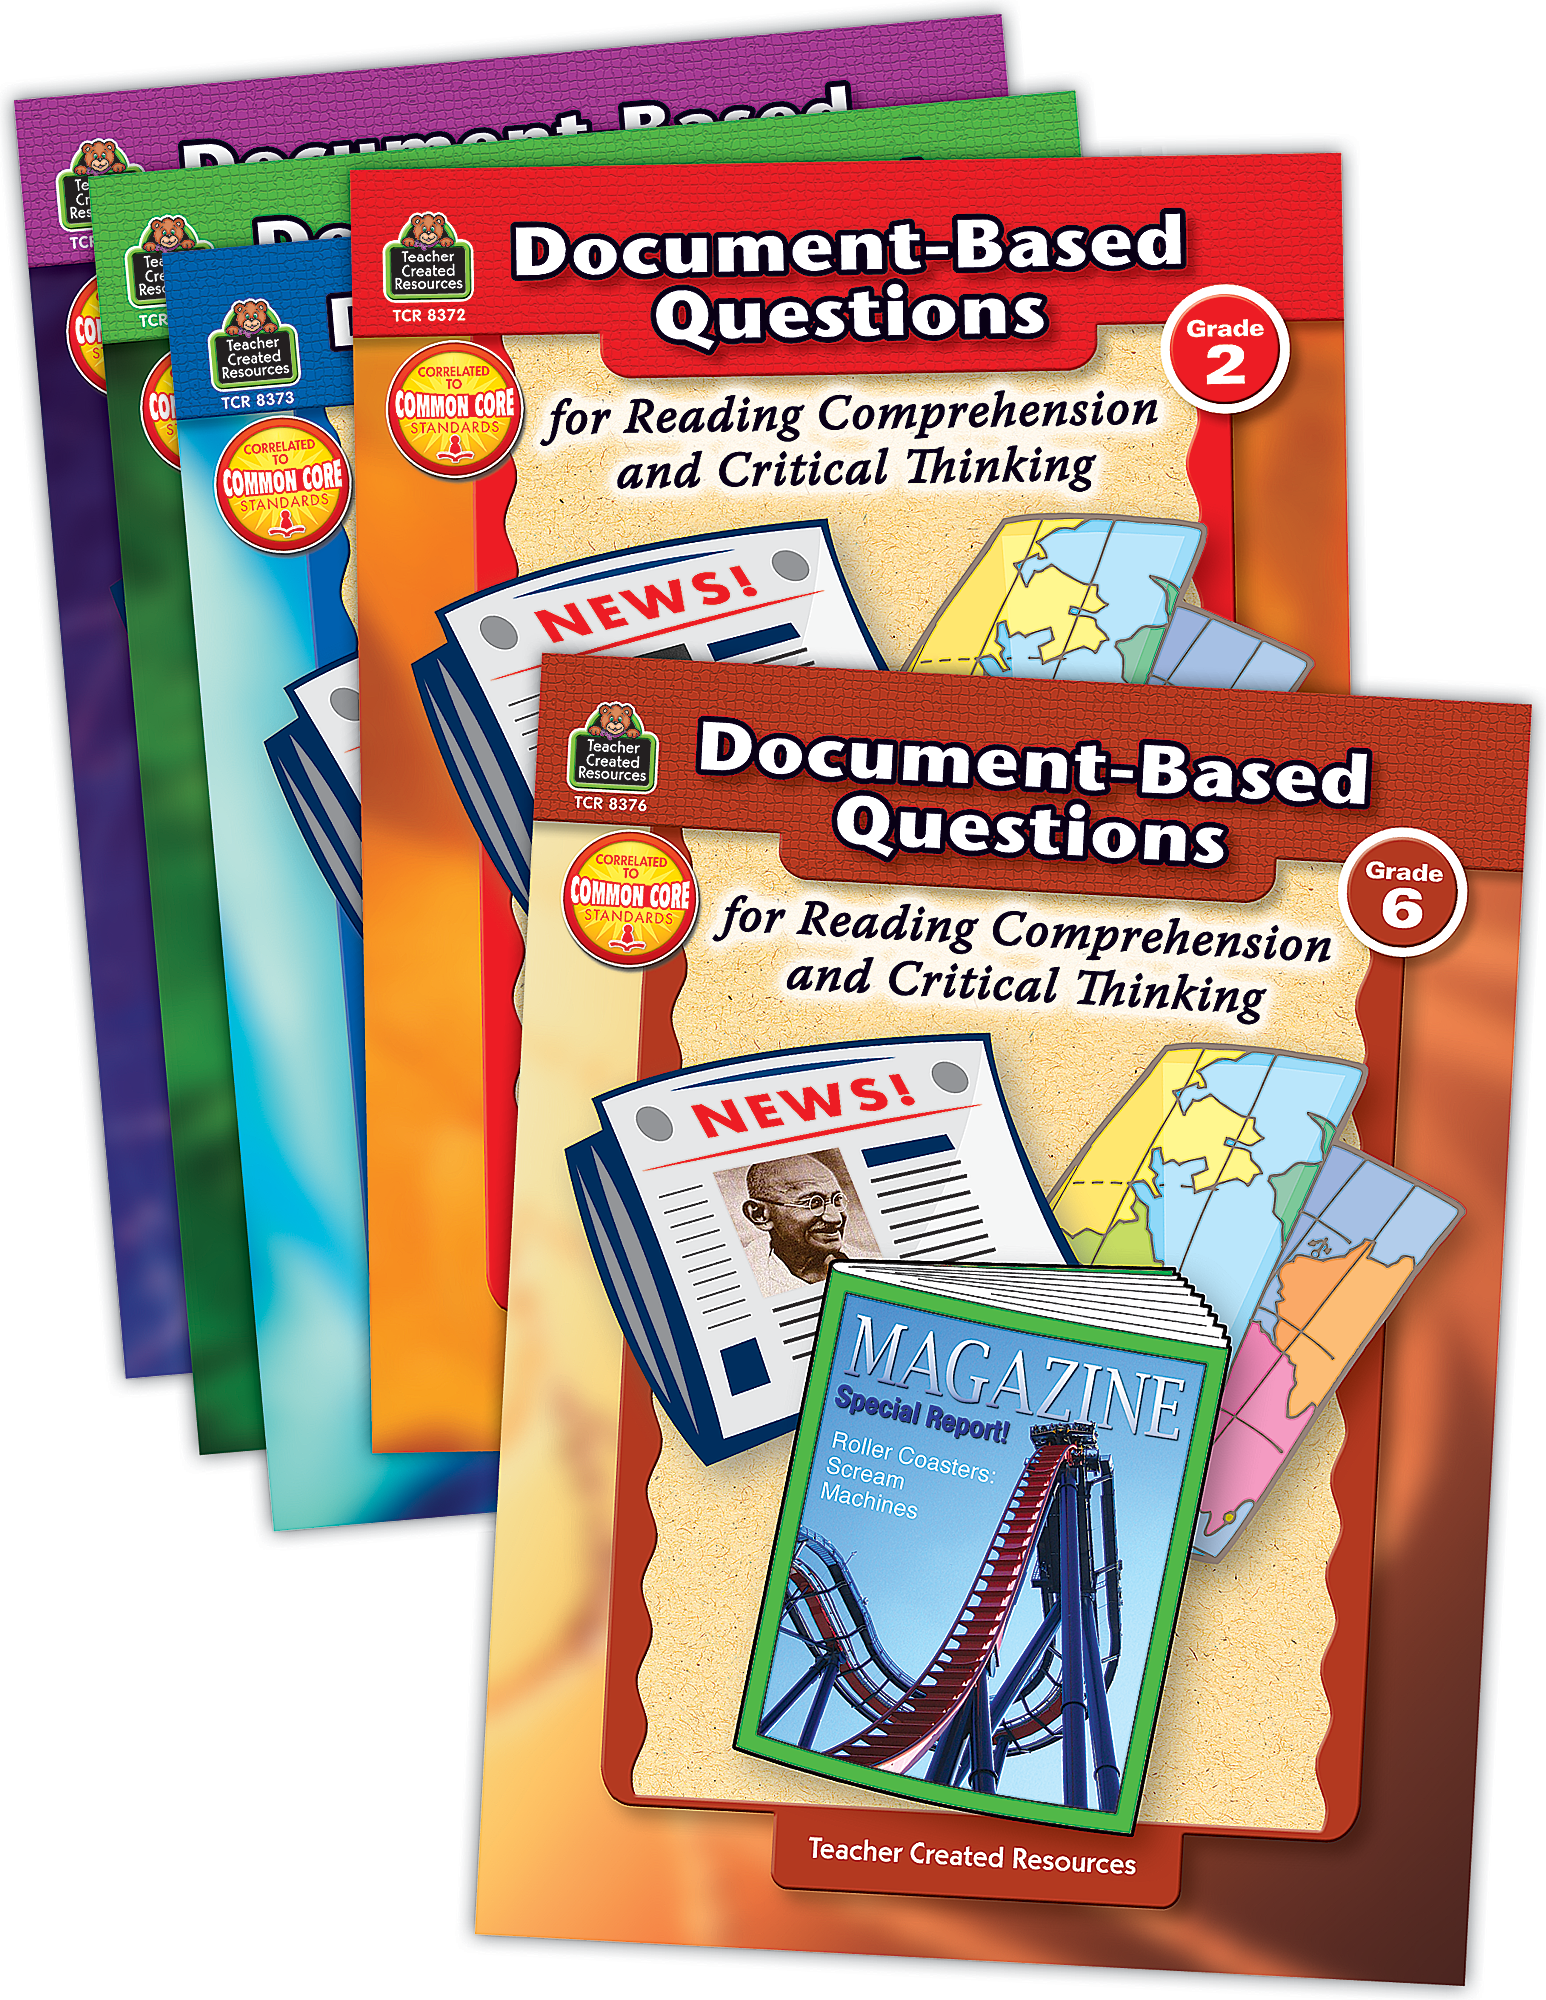 critical thinking and reading comprehension Generating questions: using critical thinking generating questions: using critical thinking district in early literacy assessment and reading comprehension.